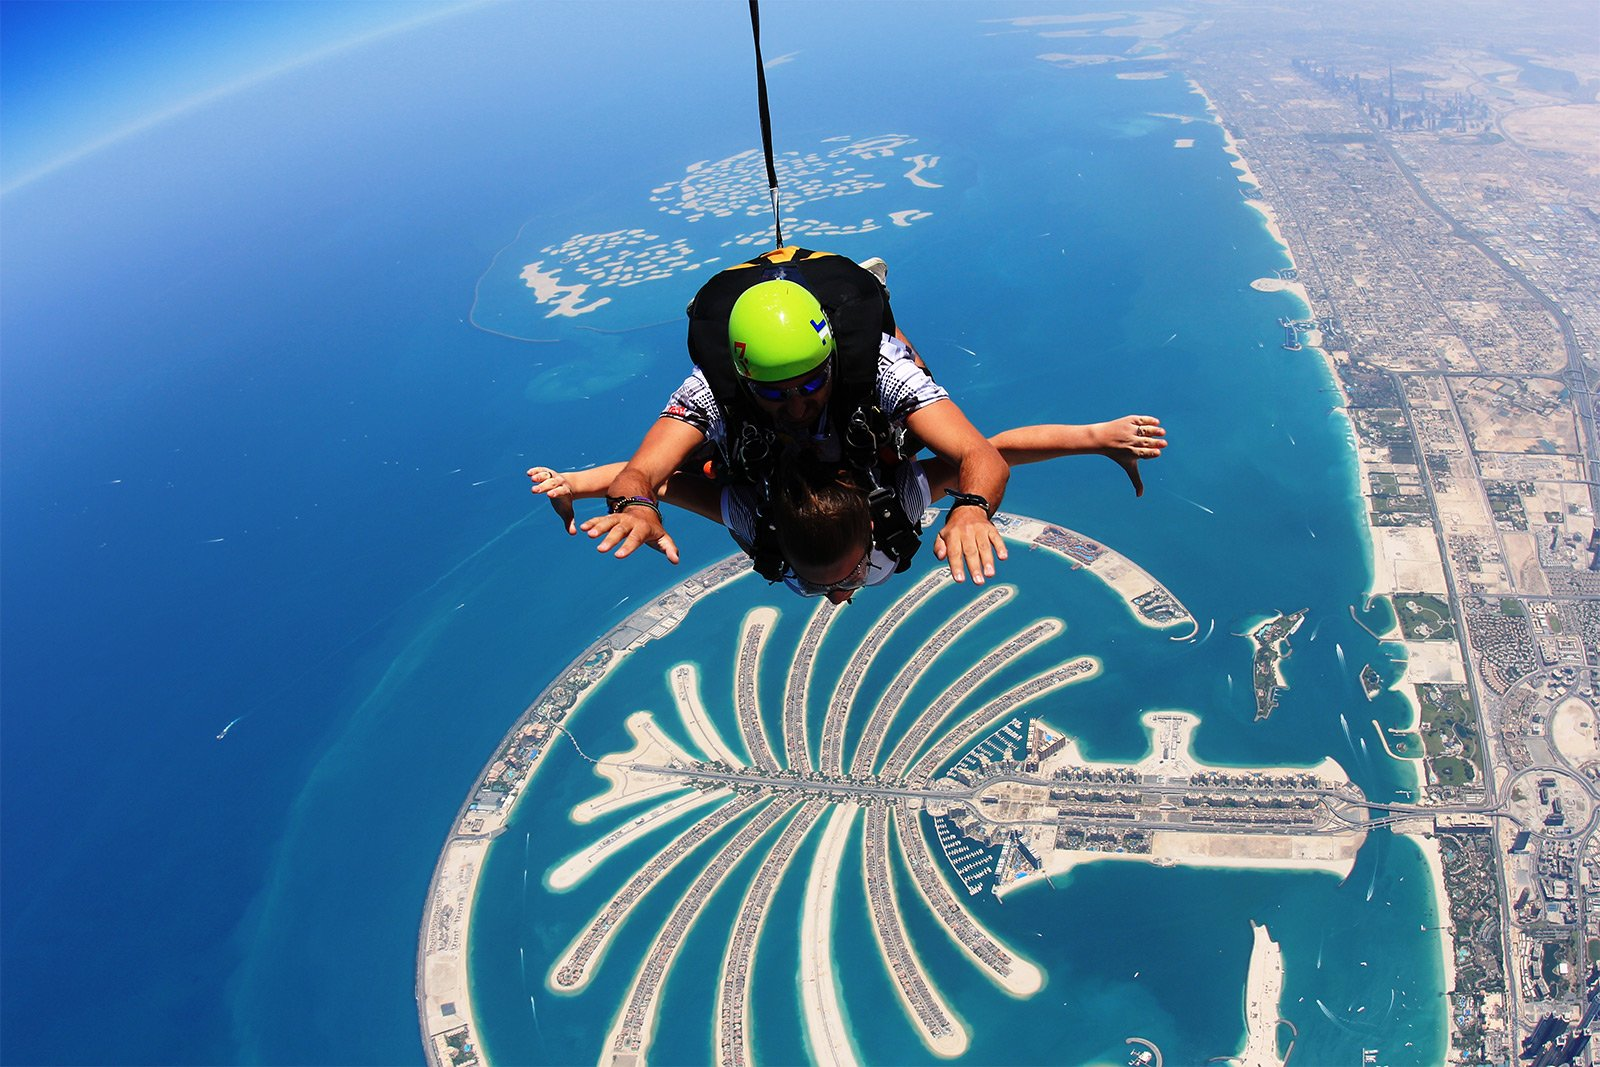 How to take a skydive in Dubai